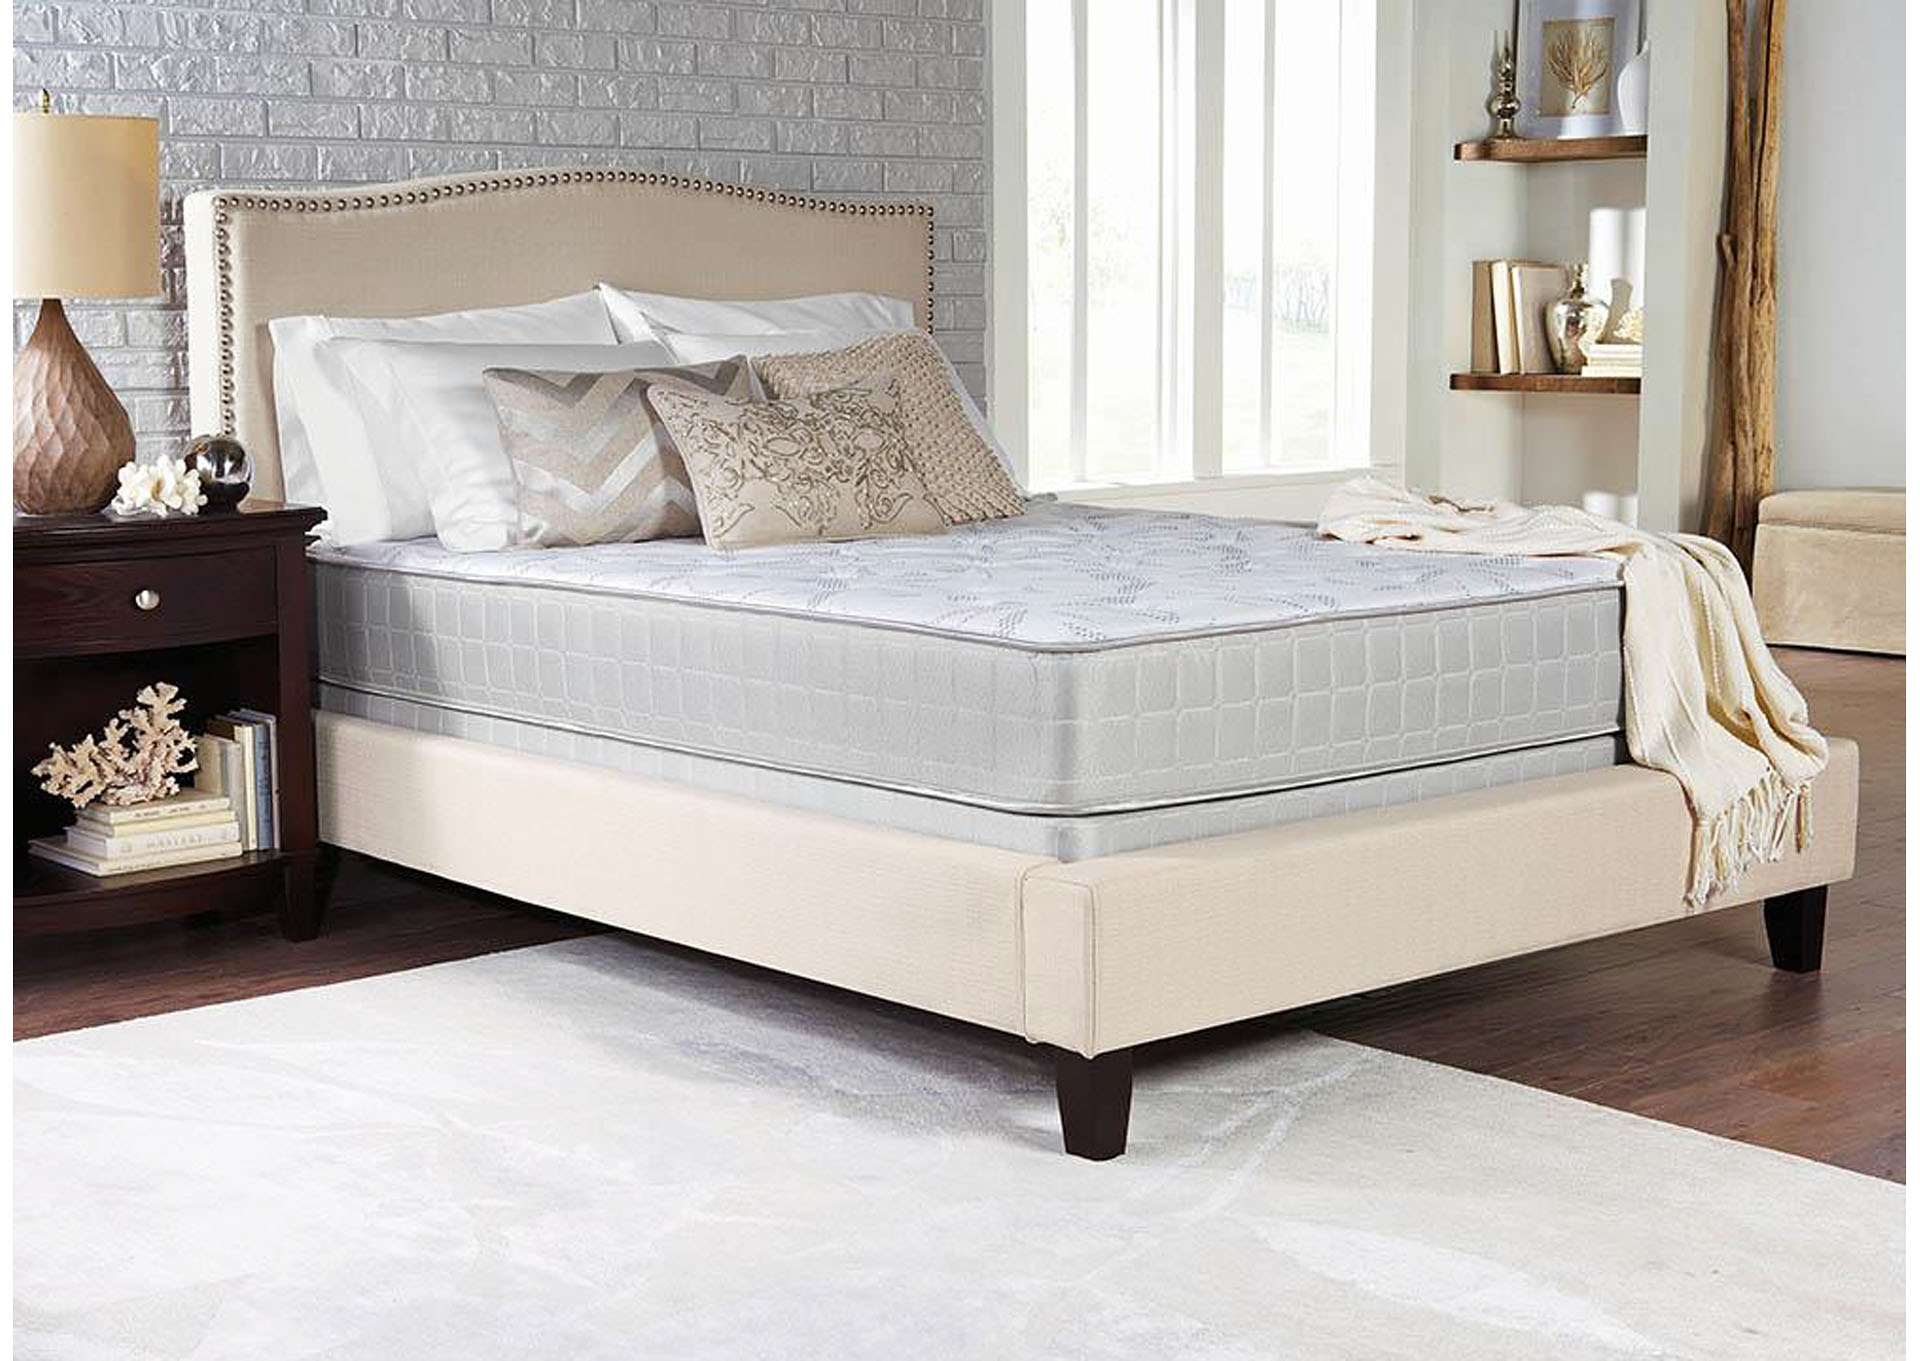 Crystal Cove Plush Twin-XL Mattress,ABF Coaster Furniture